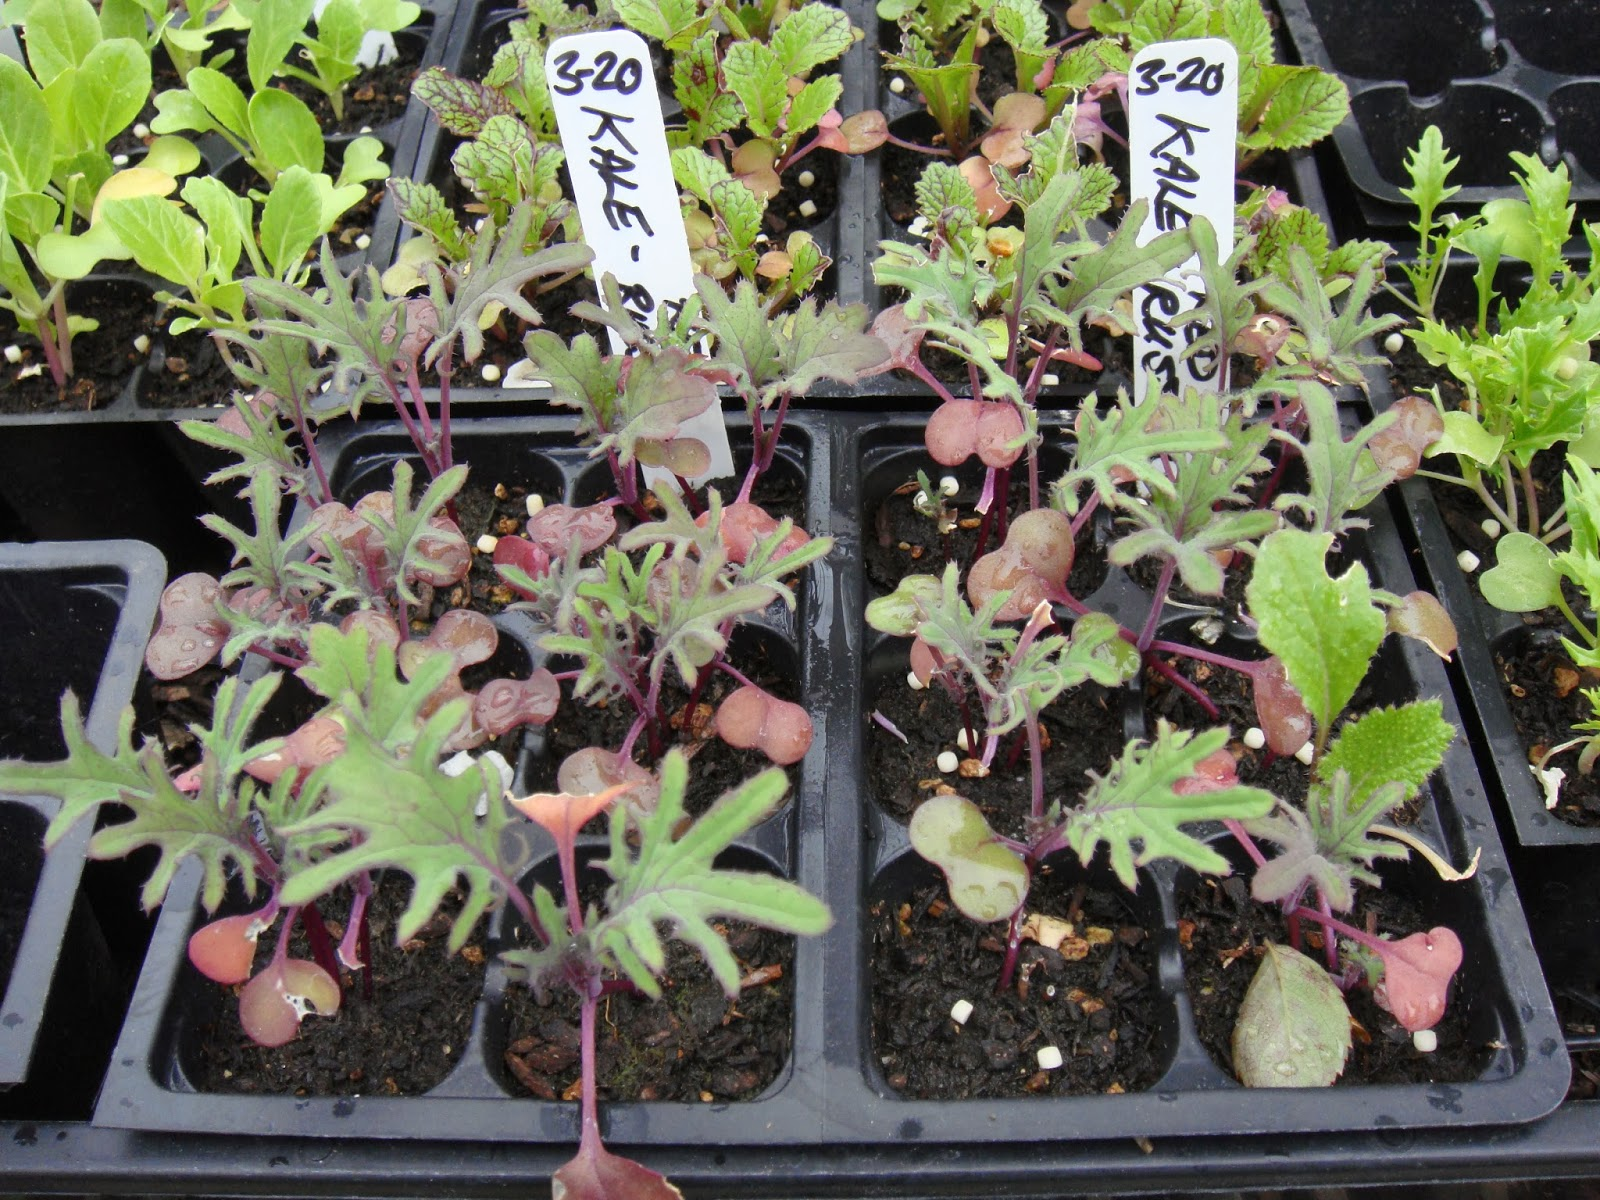 Kale Seedlings Started in The Garden Oracle's Greenhouse.  The Kale Plants in This Photo are About Four Weeks Old from the Date of Sowing and Are Ready for Planting Out in The Garden.  Kale is a Member of the Brassica Family and as Such is a Very Hardy Plant as far as Vegetables Go, but Depending on Temperatures and Weather Conditions a Cloche or Cold Frame may be Helpful to Provide Optimum Growing Conditions and Give Them A Happy Head Start on the Gardening Season - These Items are Available Through The Gardening Suppliers Listed Here on The Garden Oracle Site.